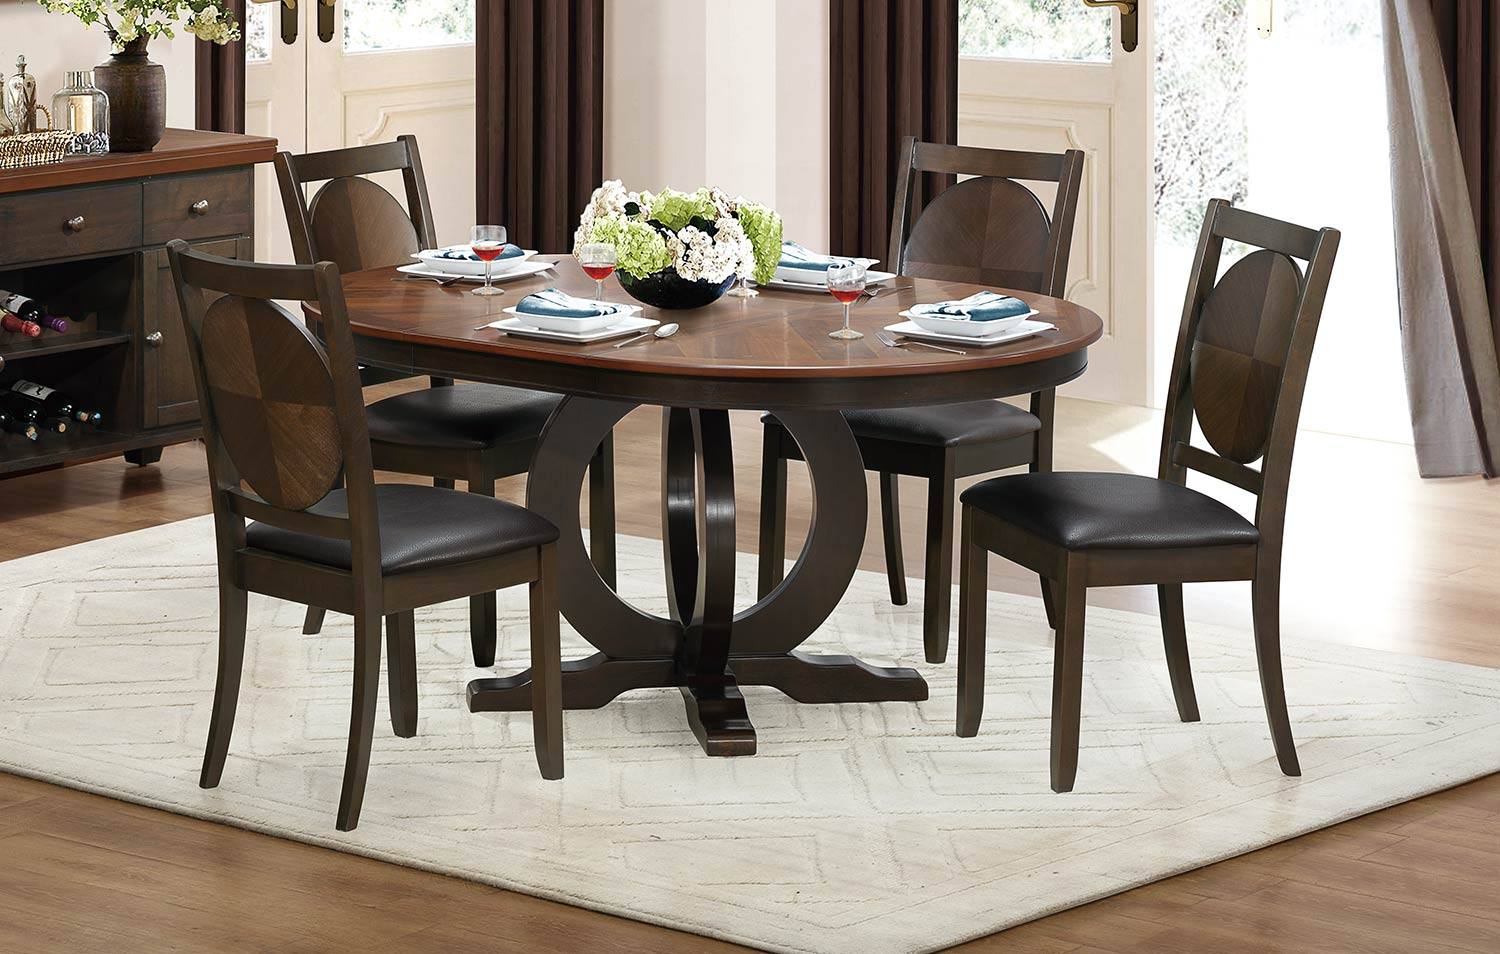 Homelegance Turing Dining Set - Dark Brown